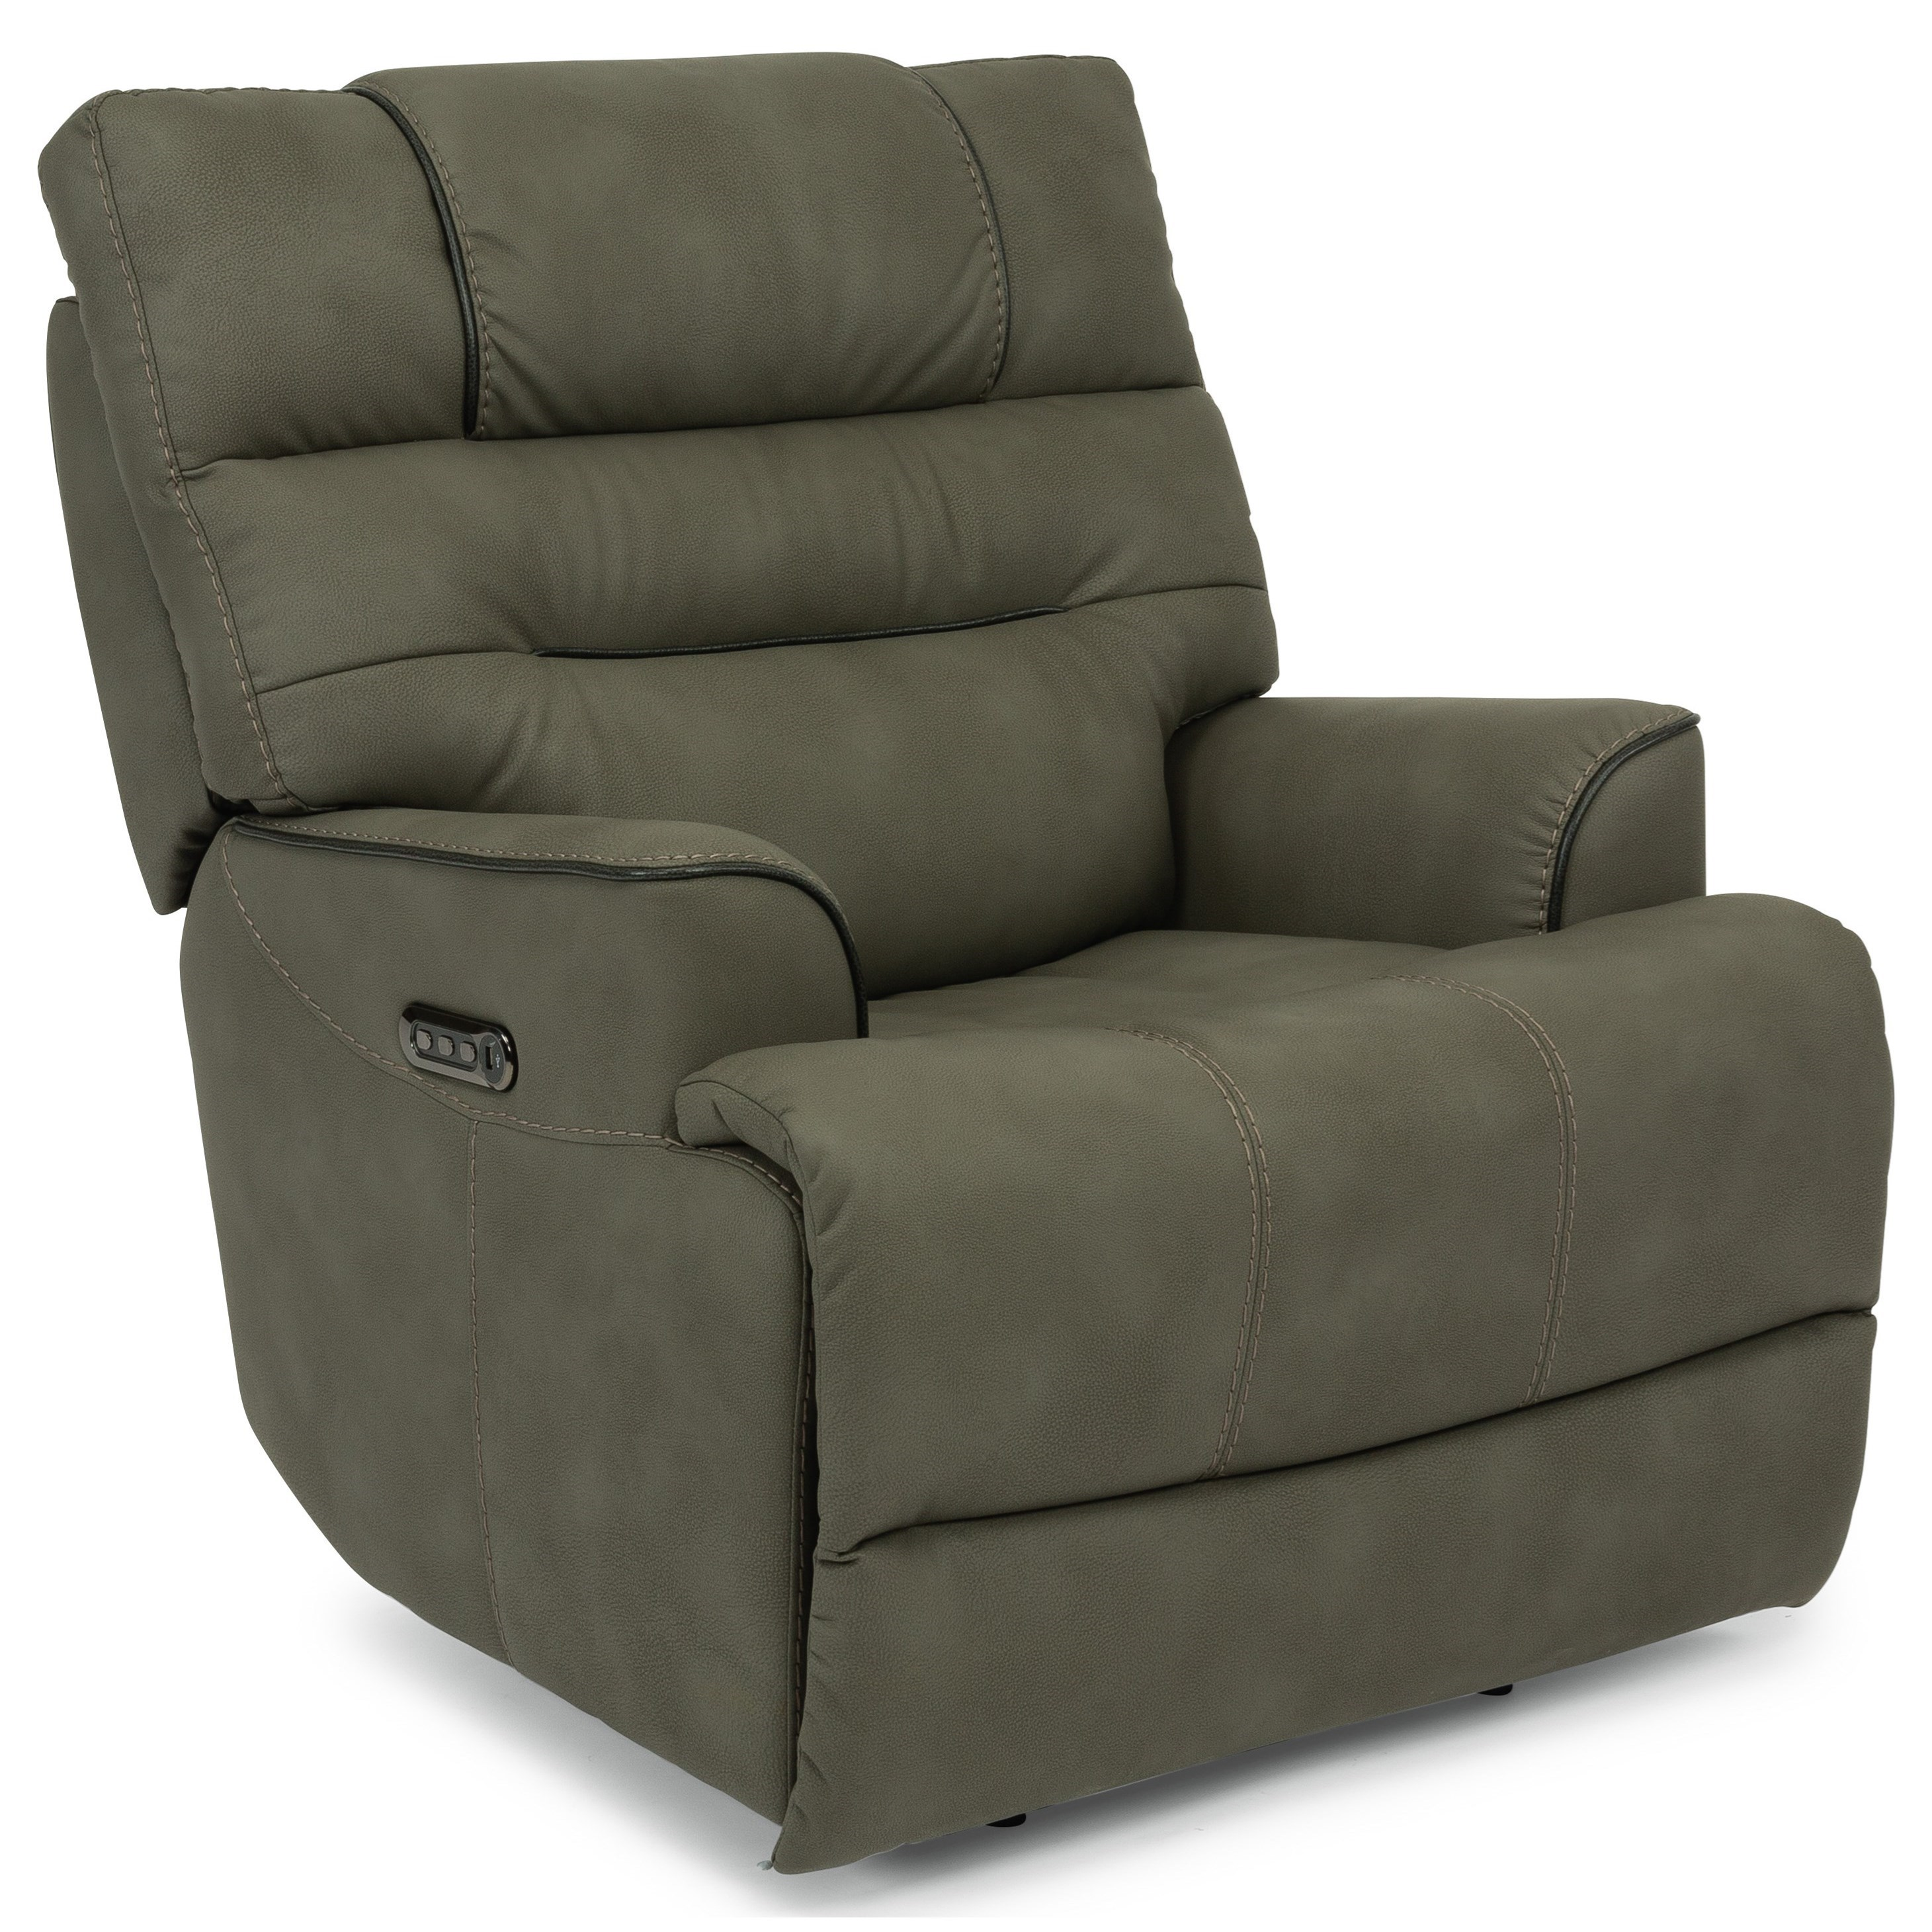 Latitudes - Brian Power Recliner by Flexsteel at Rooms and Rest